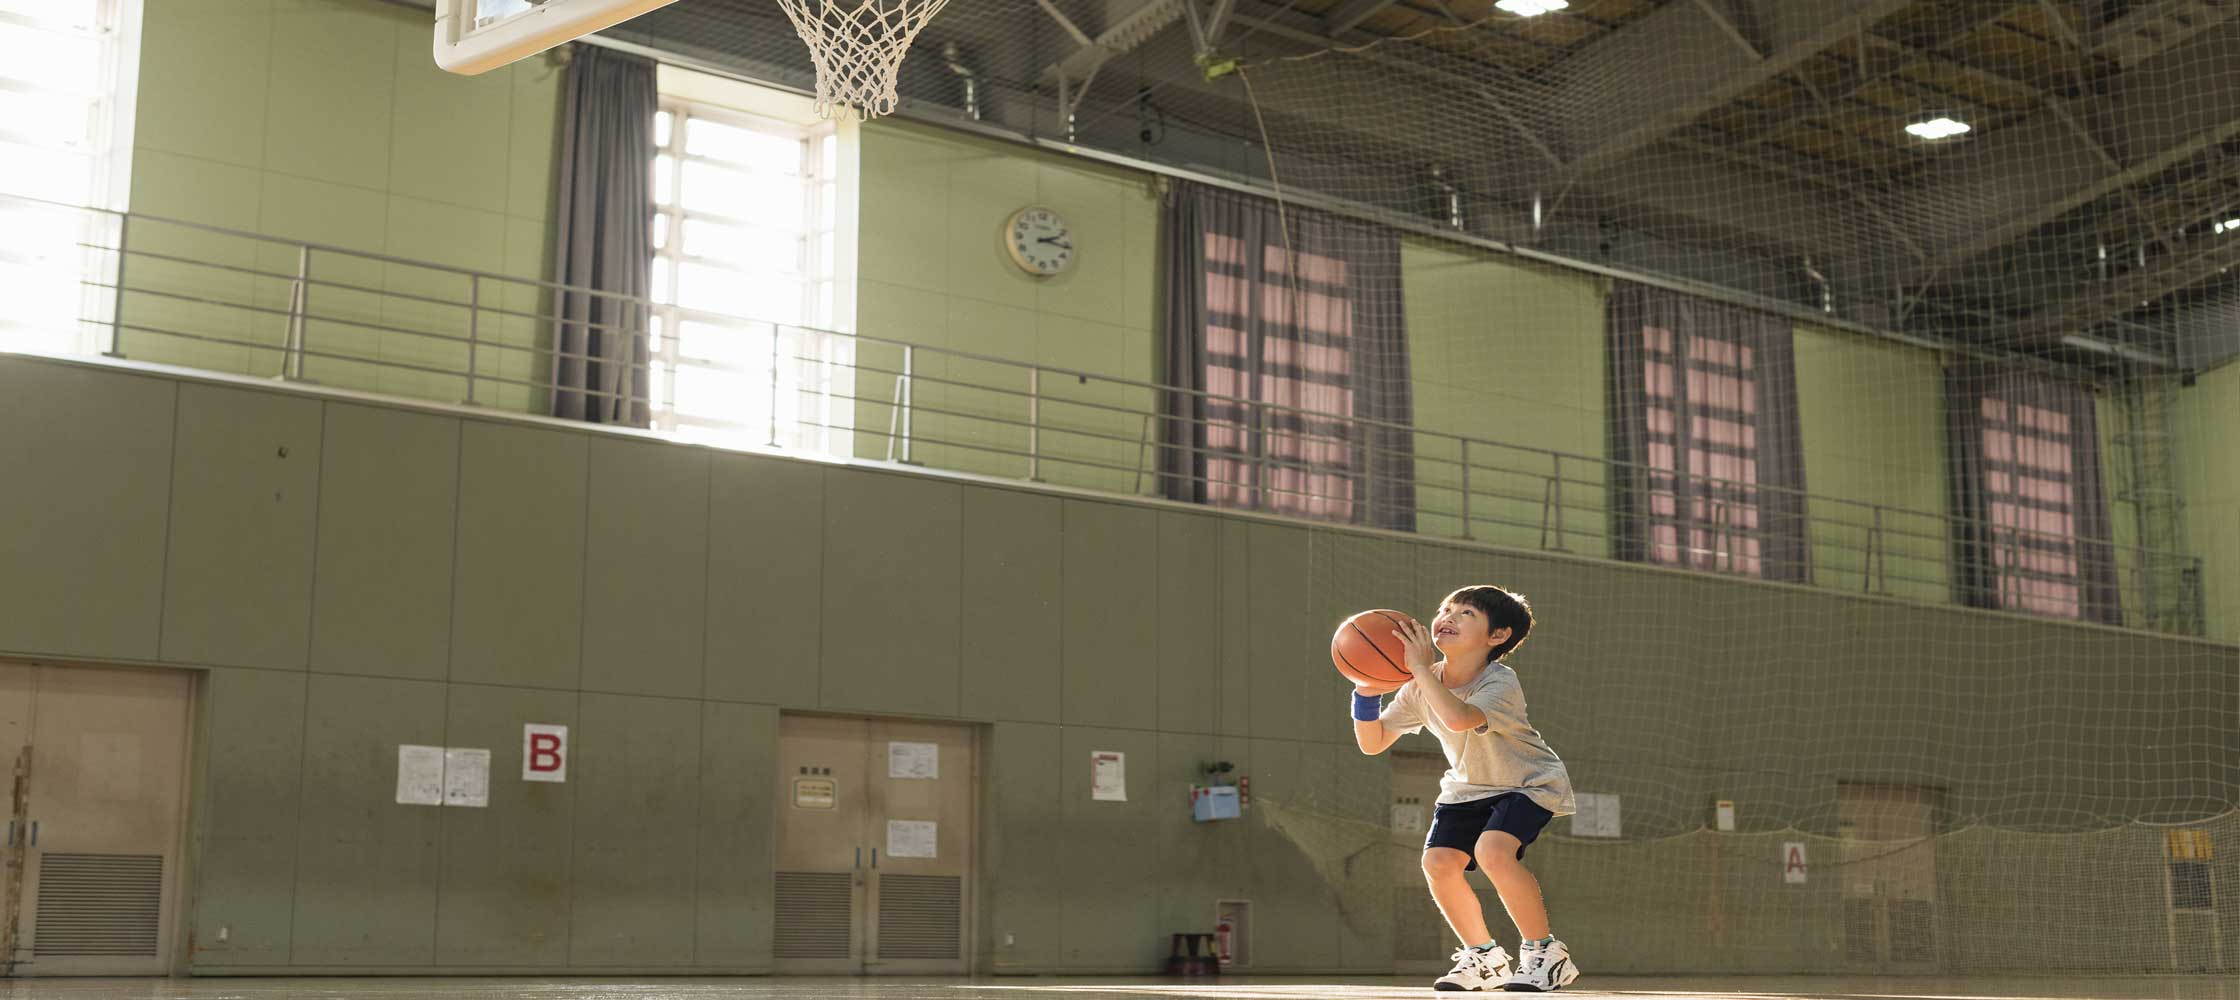 Office Metal Buildings Basketball Player